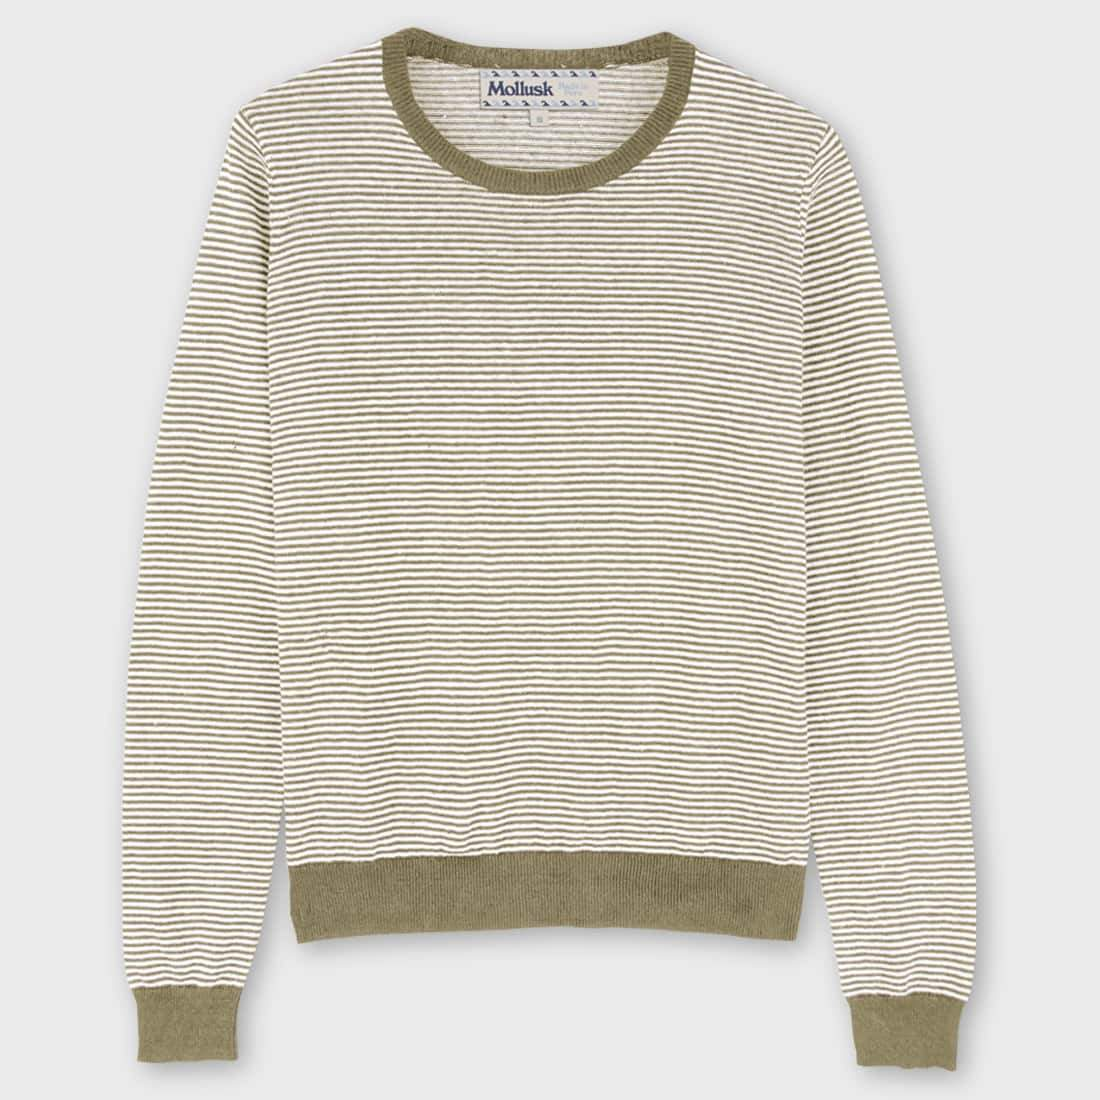 Mollusk Mini Stripe Sweater Tan Stripe